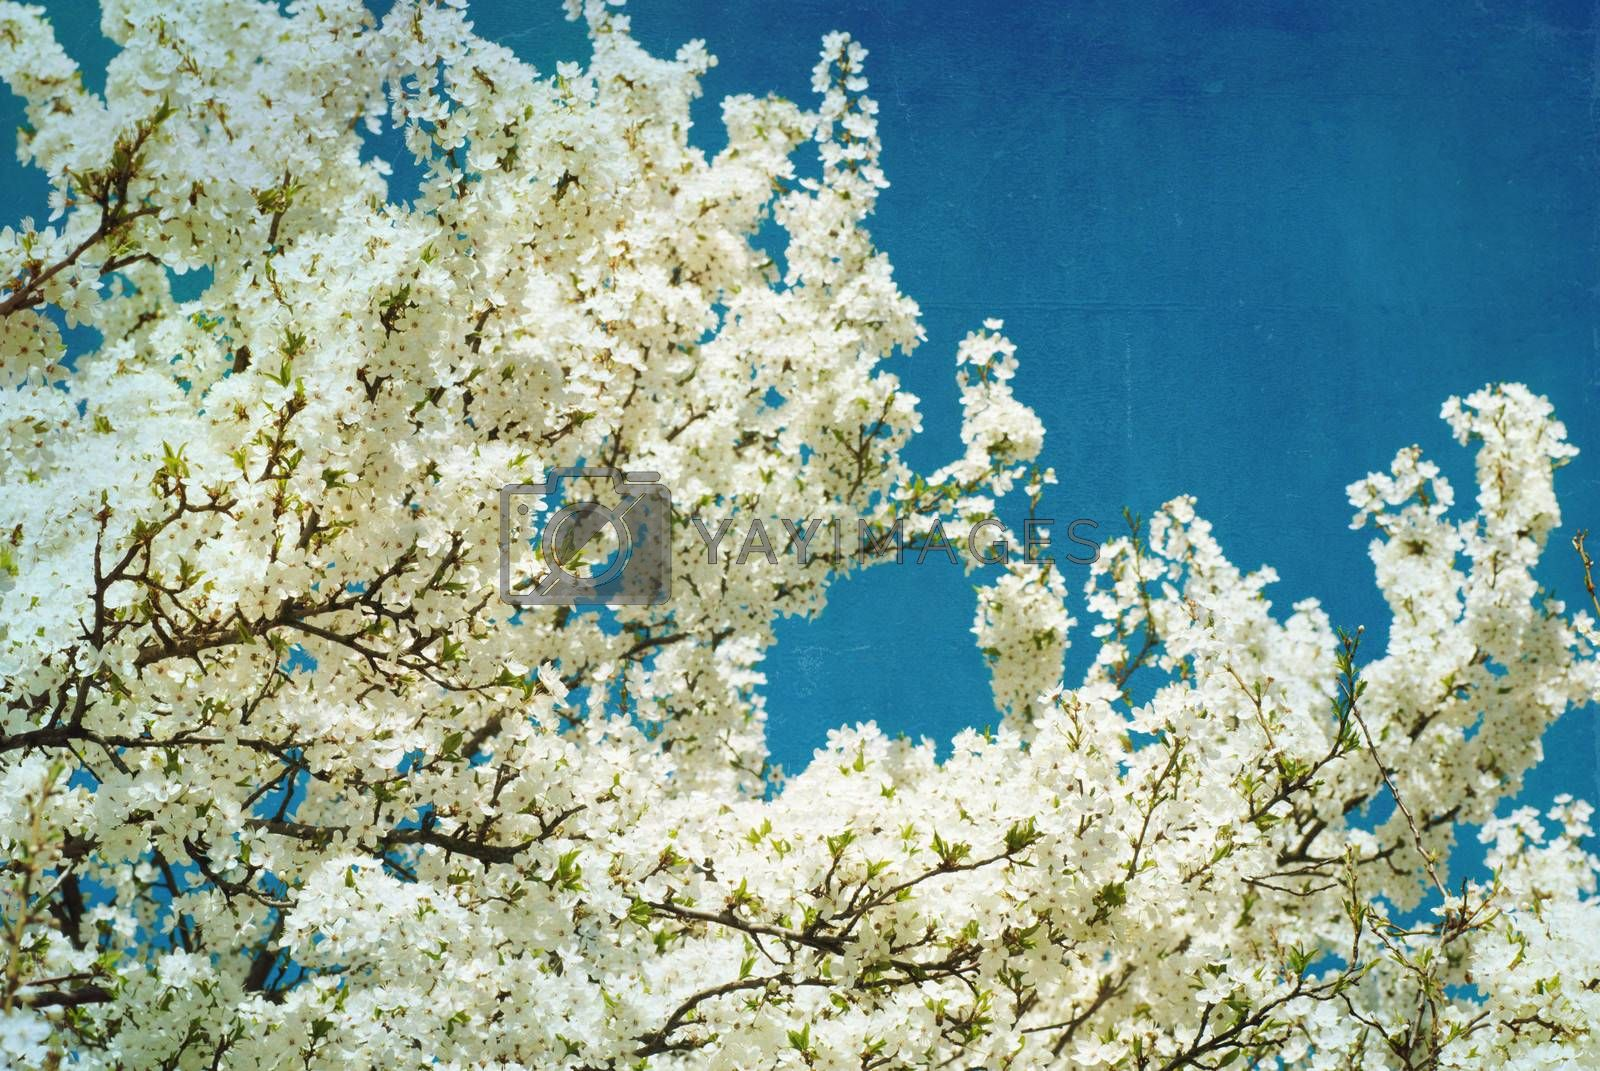 Royalty free image of spring flowering tree on blue textured sky by Zhukow